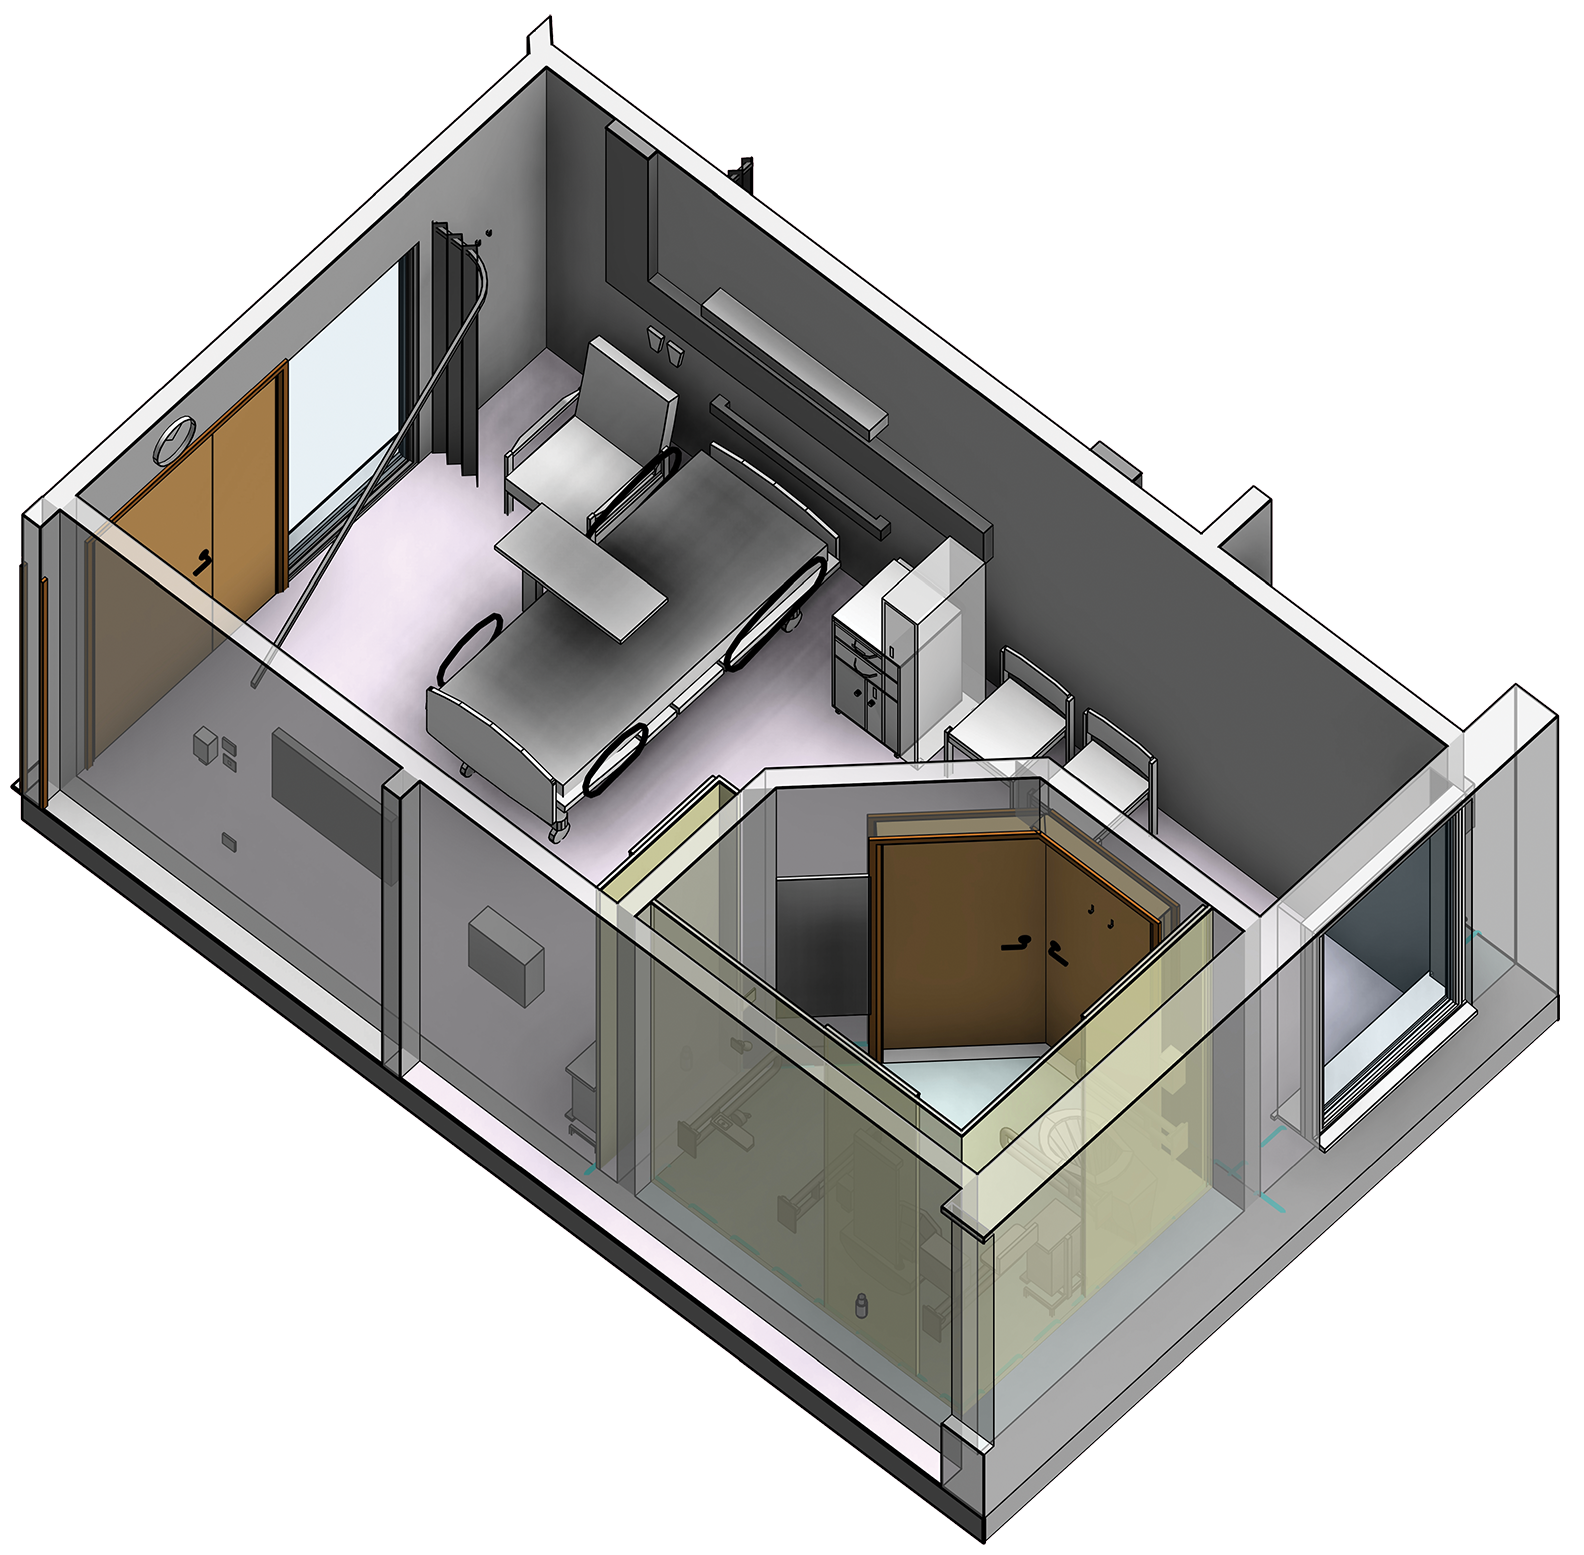 Bedroom Layout With Bathroom